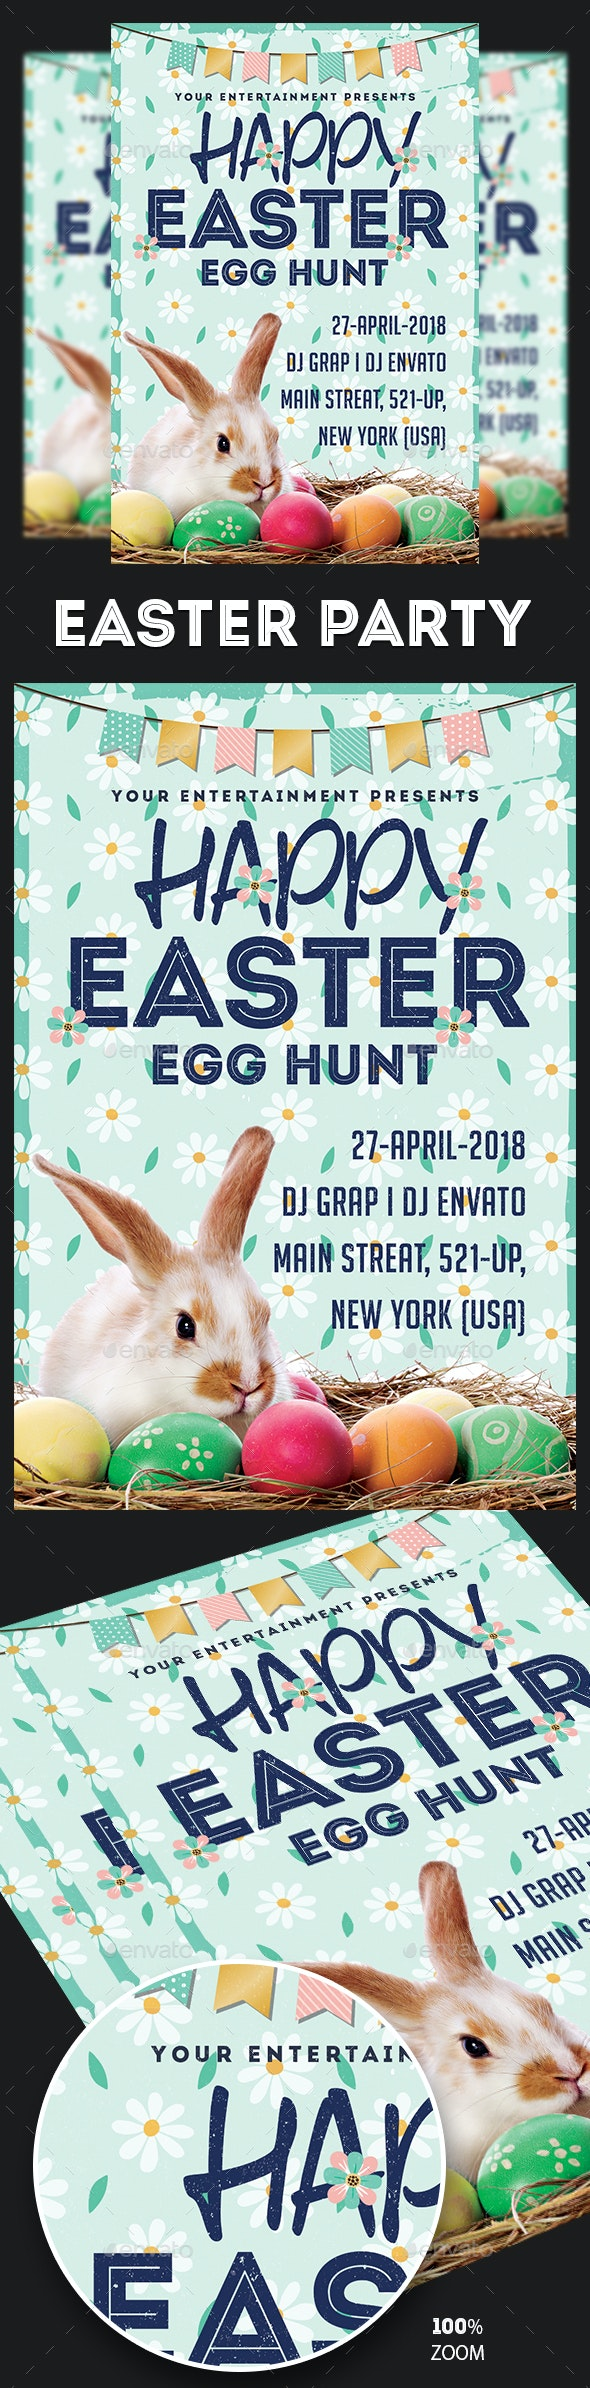 Easter Party Flyer Template - Holidays Events